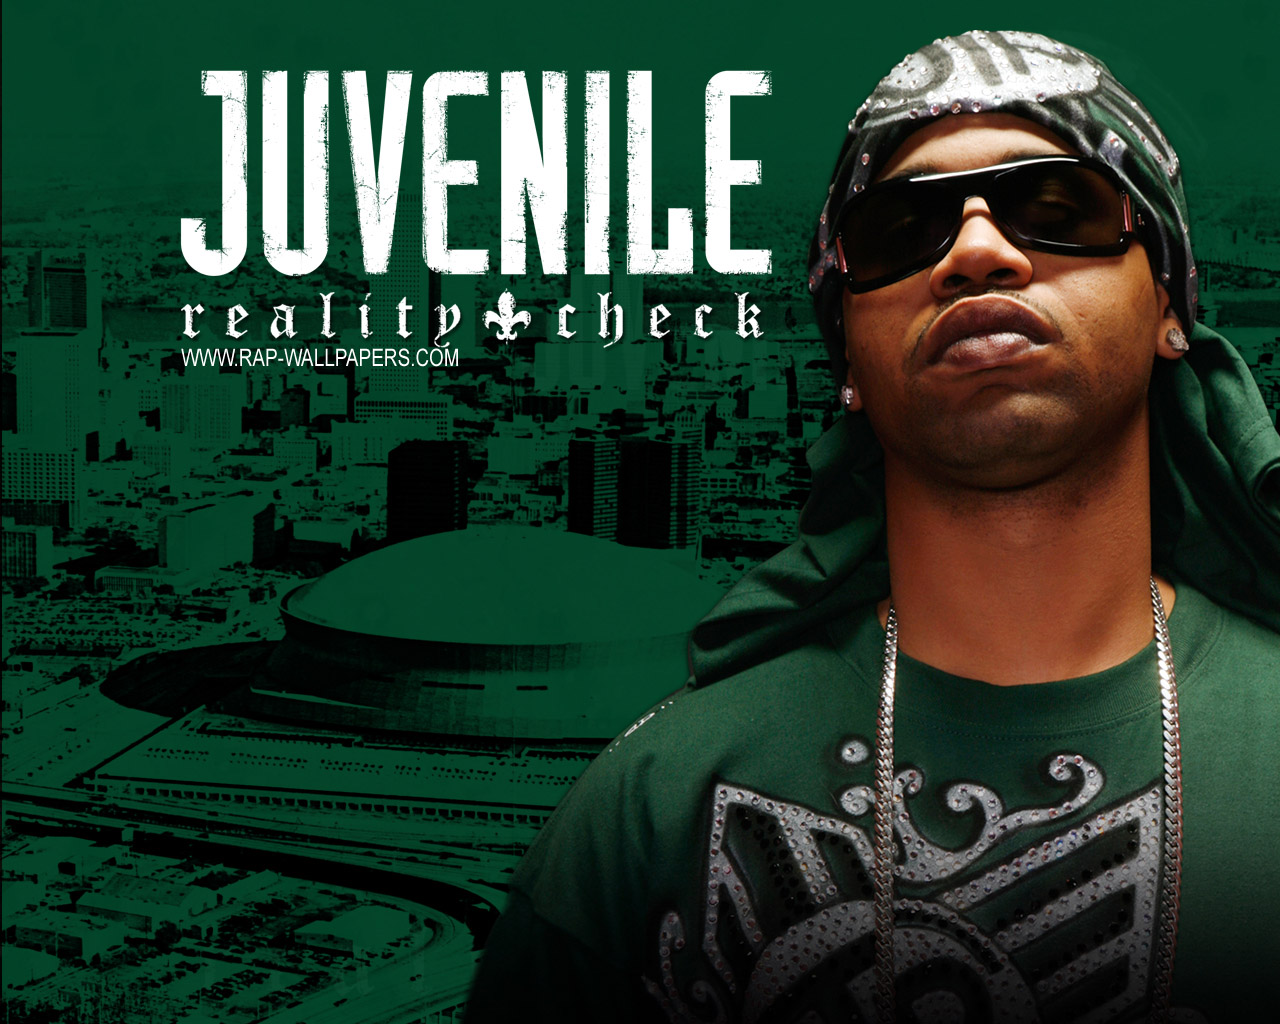 juvenile realty check 03